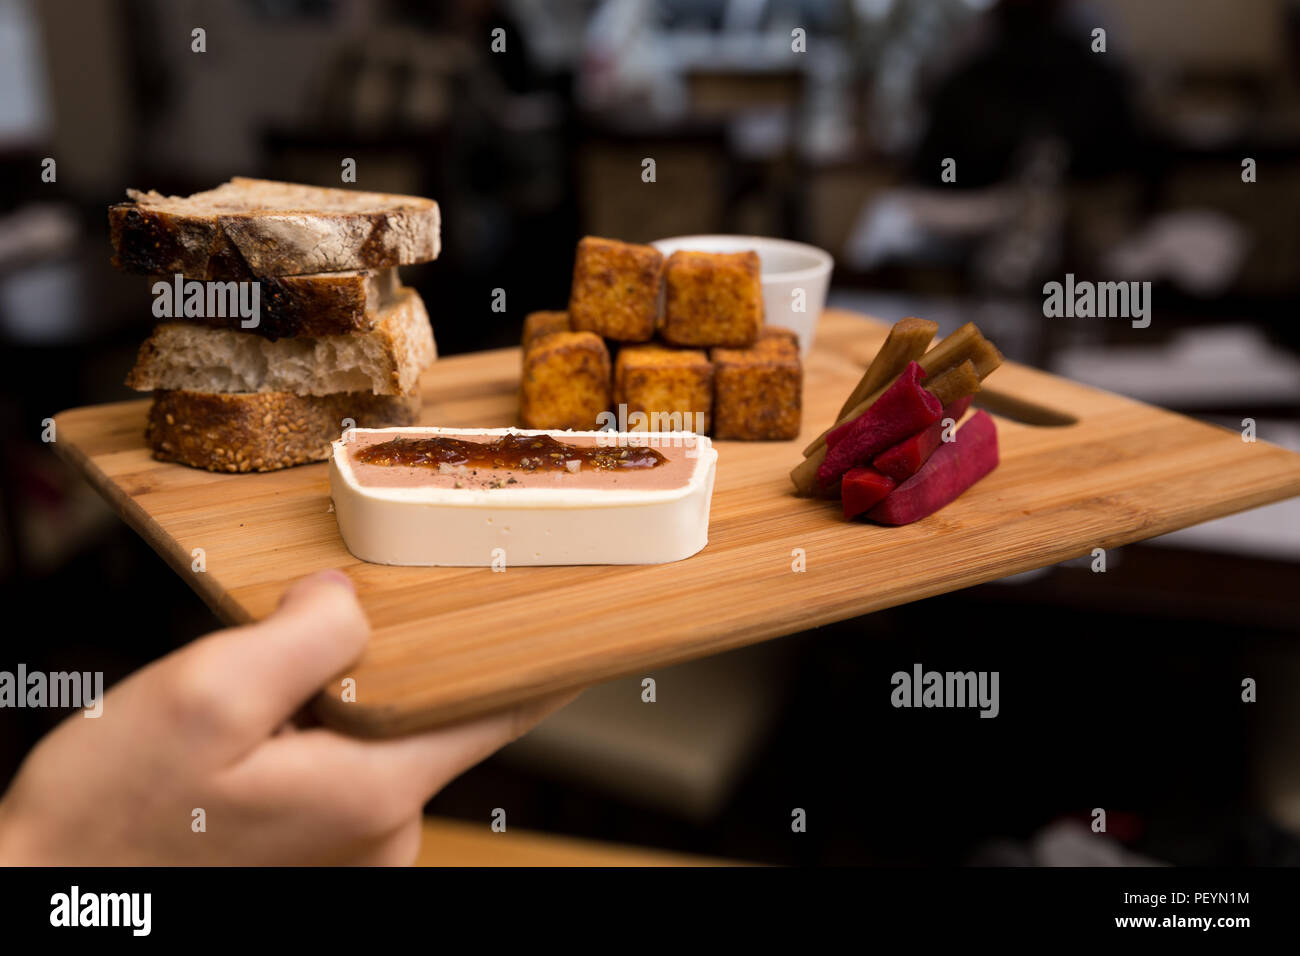 A European style appetizer platter consisting of chicken liver mousse, polenta fritters, bread, and pickled carrots. - Stock Image